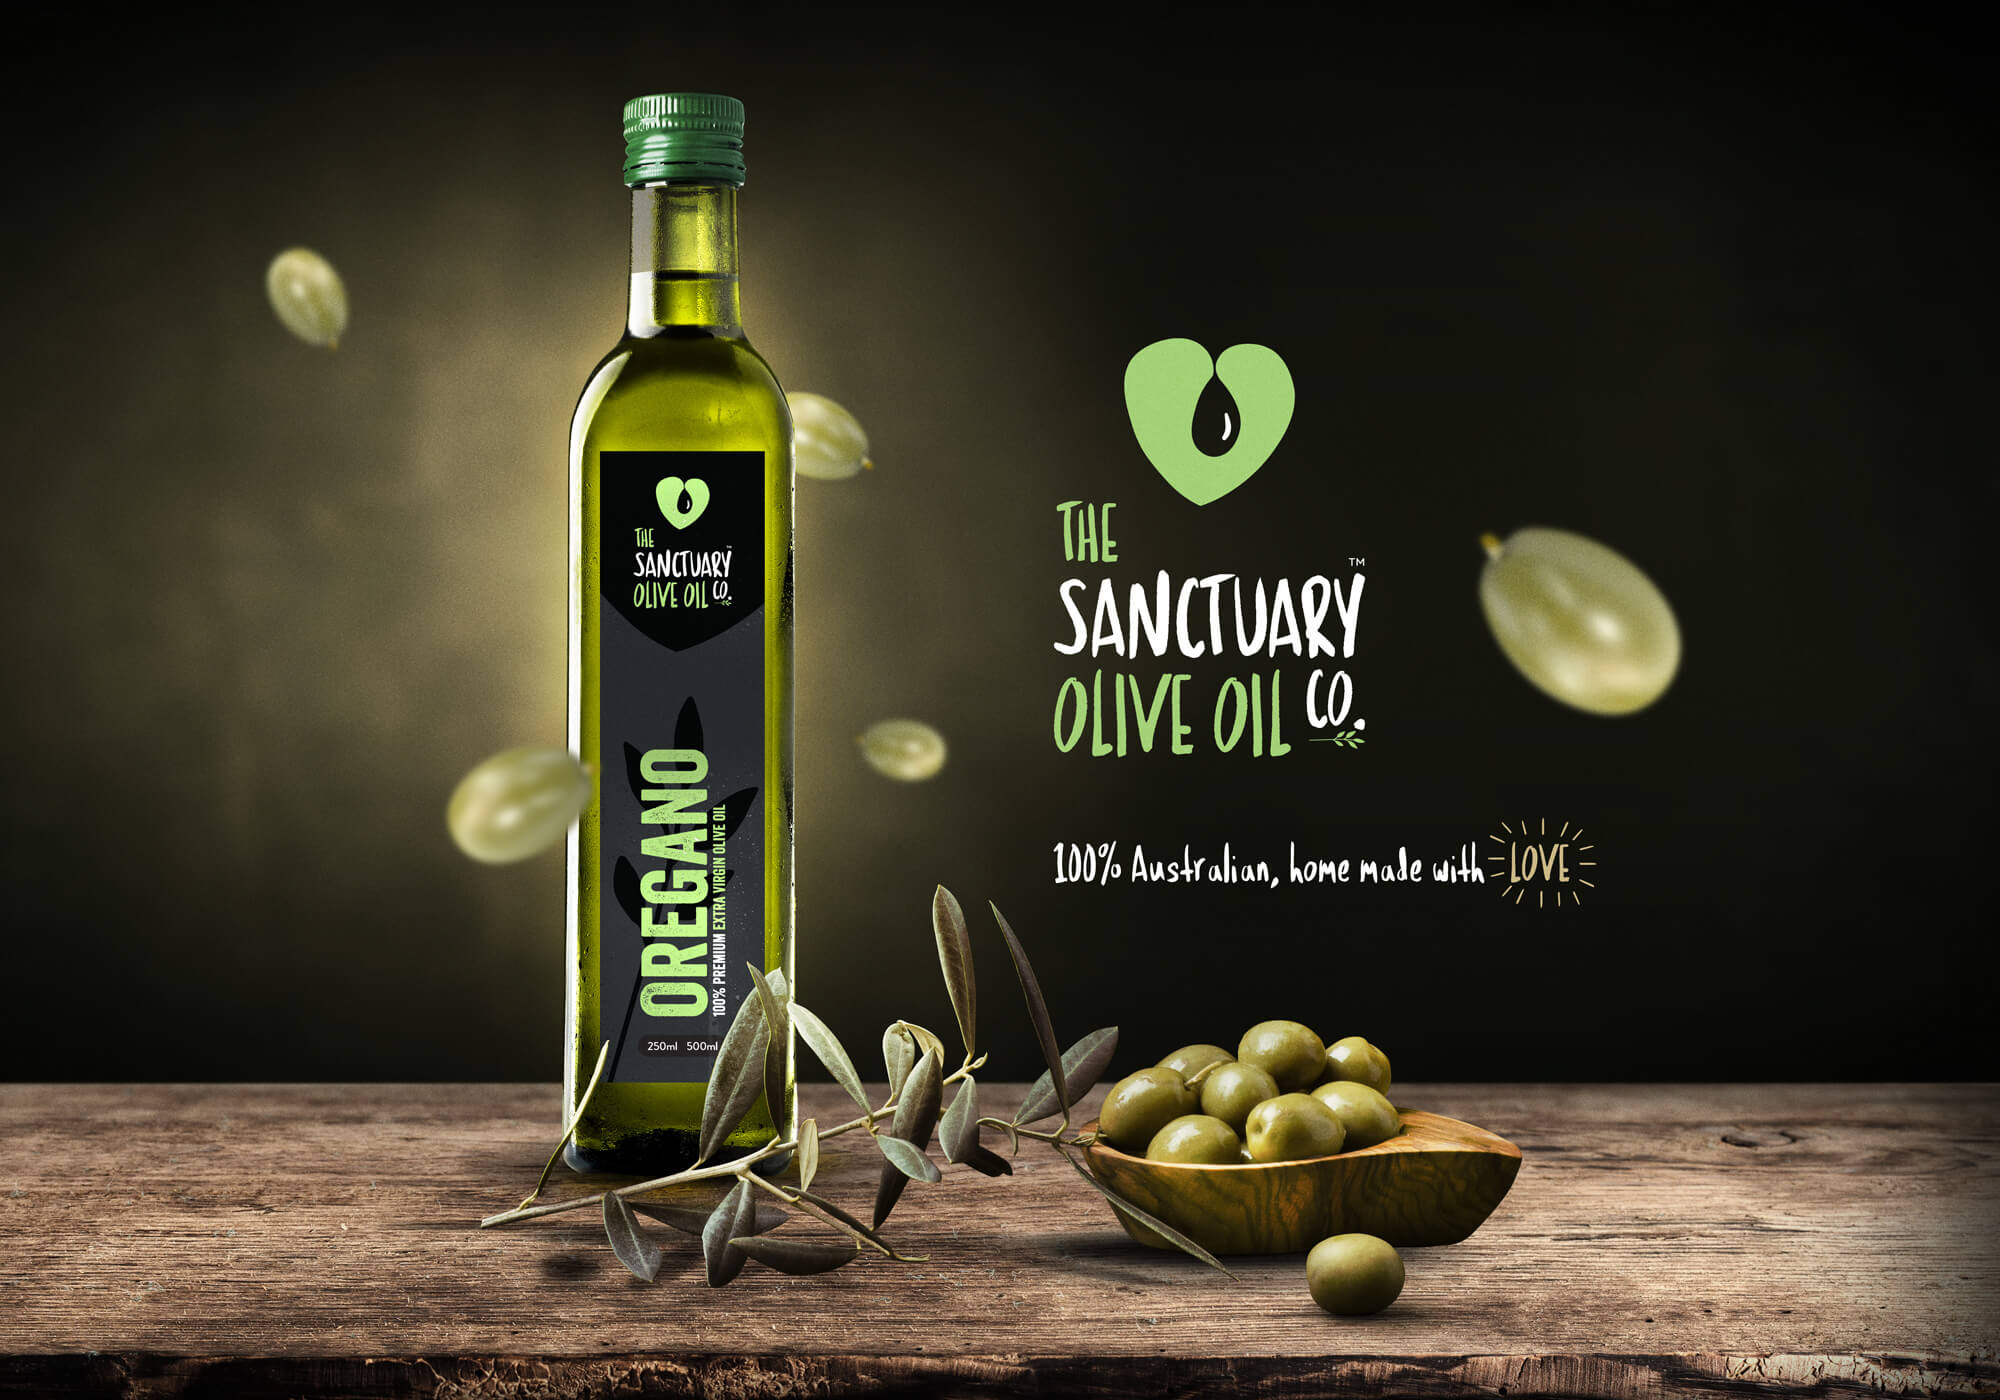 The Sanctuary Olive Oil Co. label